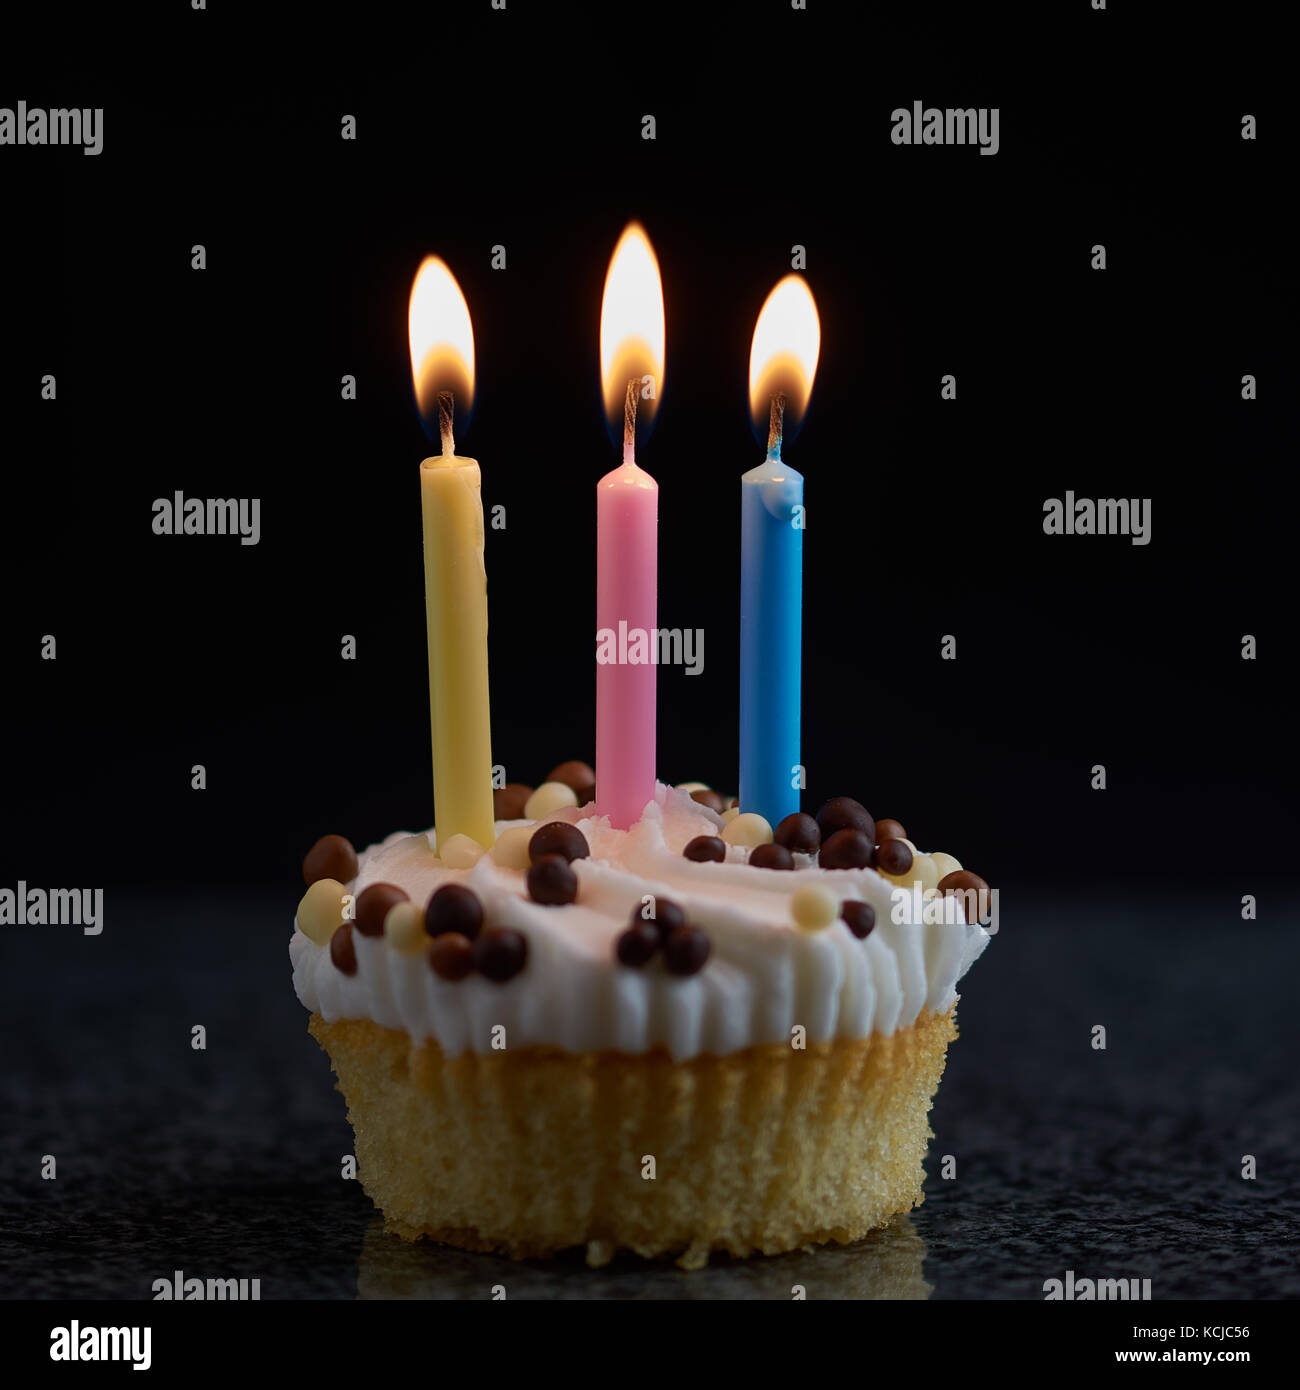 Cake Candles Old Stock Photos Amp Cake Candles Old Stock